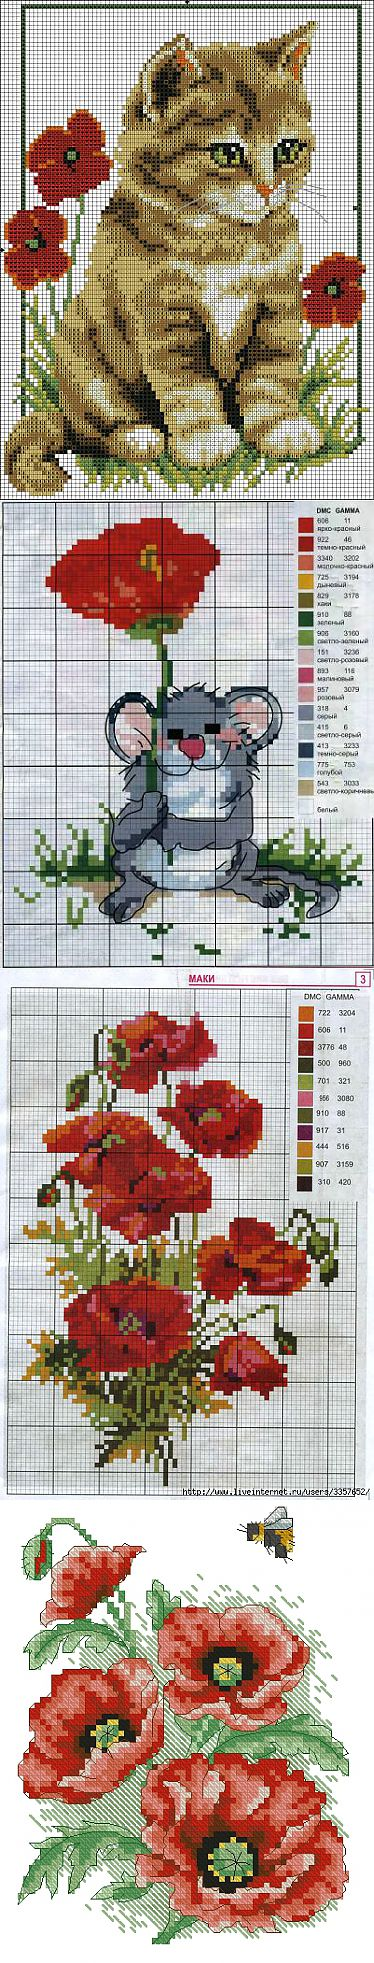 Embroidery Patterns. Redwork Embroidery. Free Patterns | Laboratory household